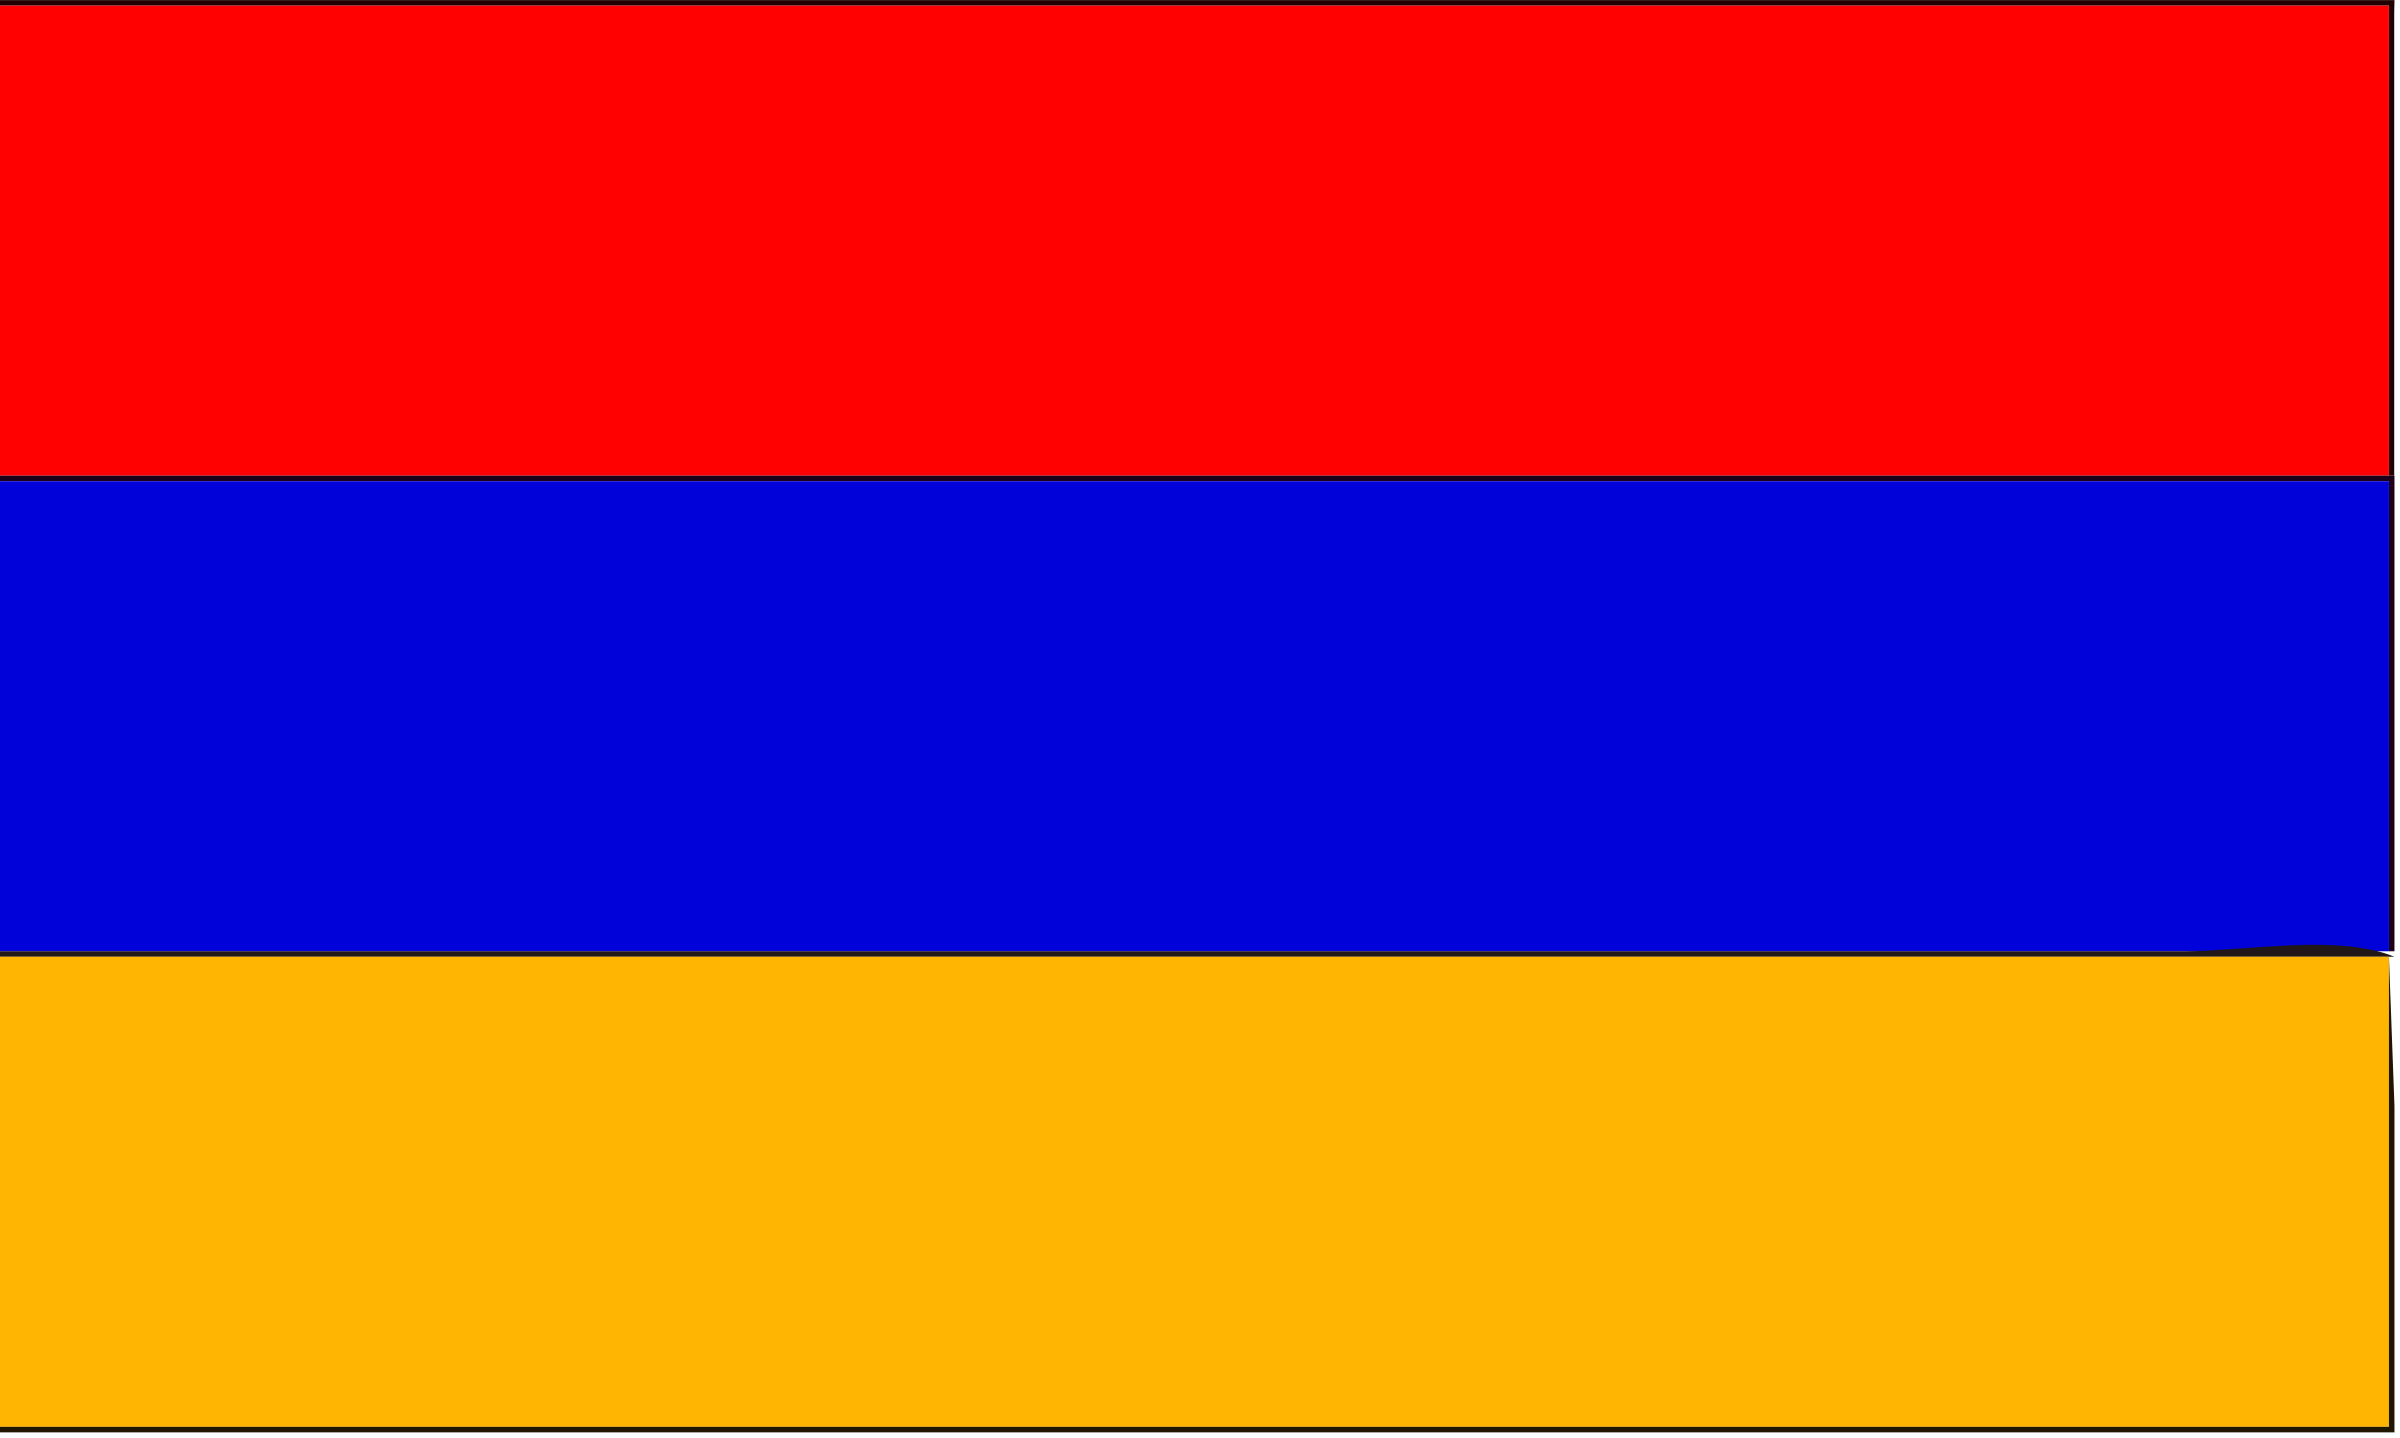 Flag of Armenia by Joesph